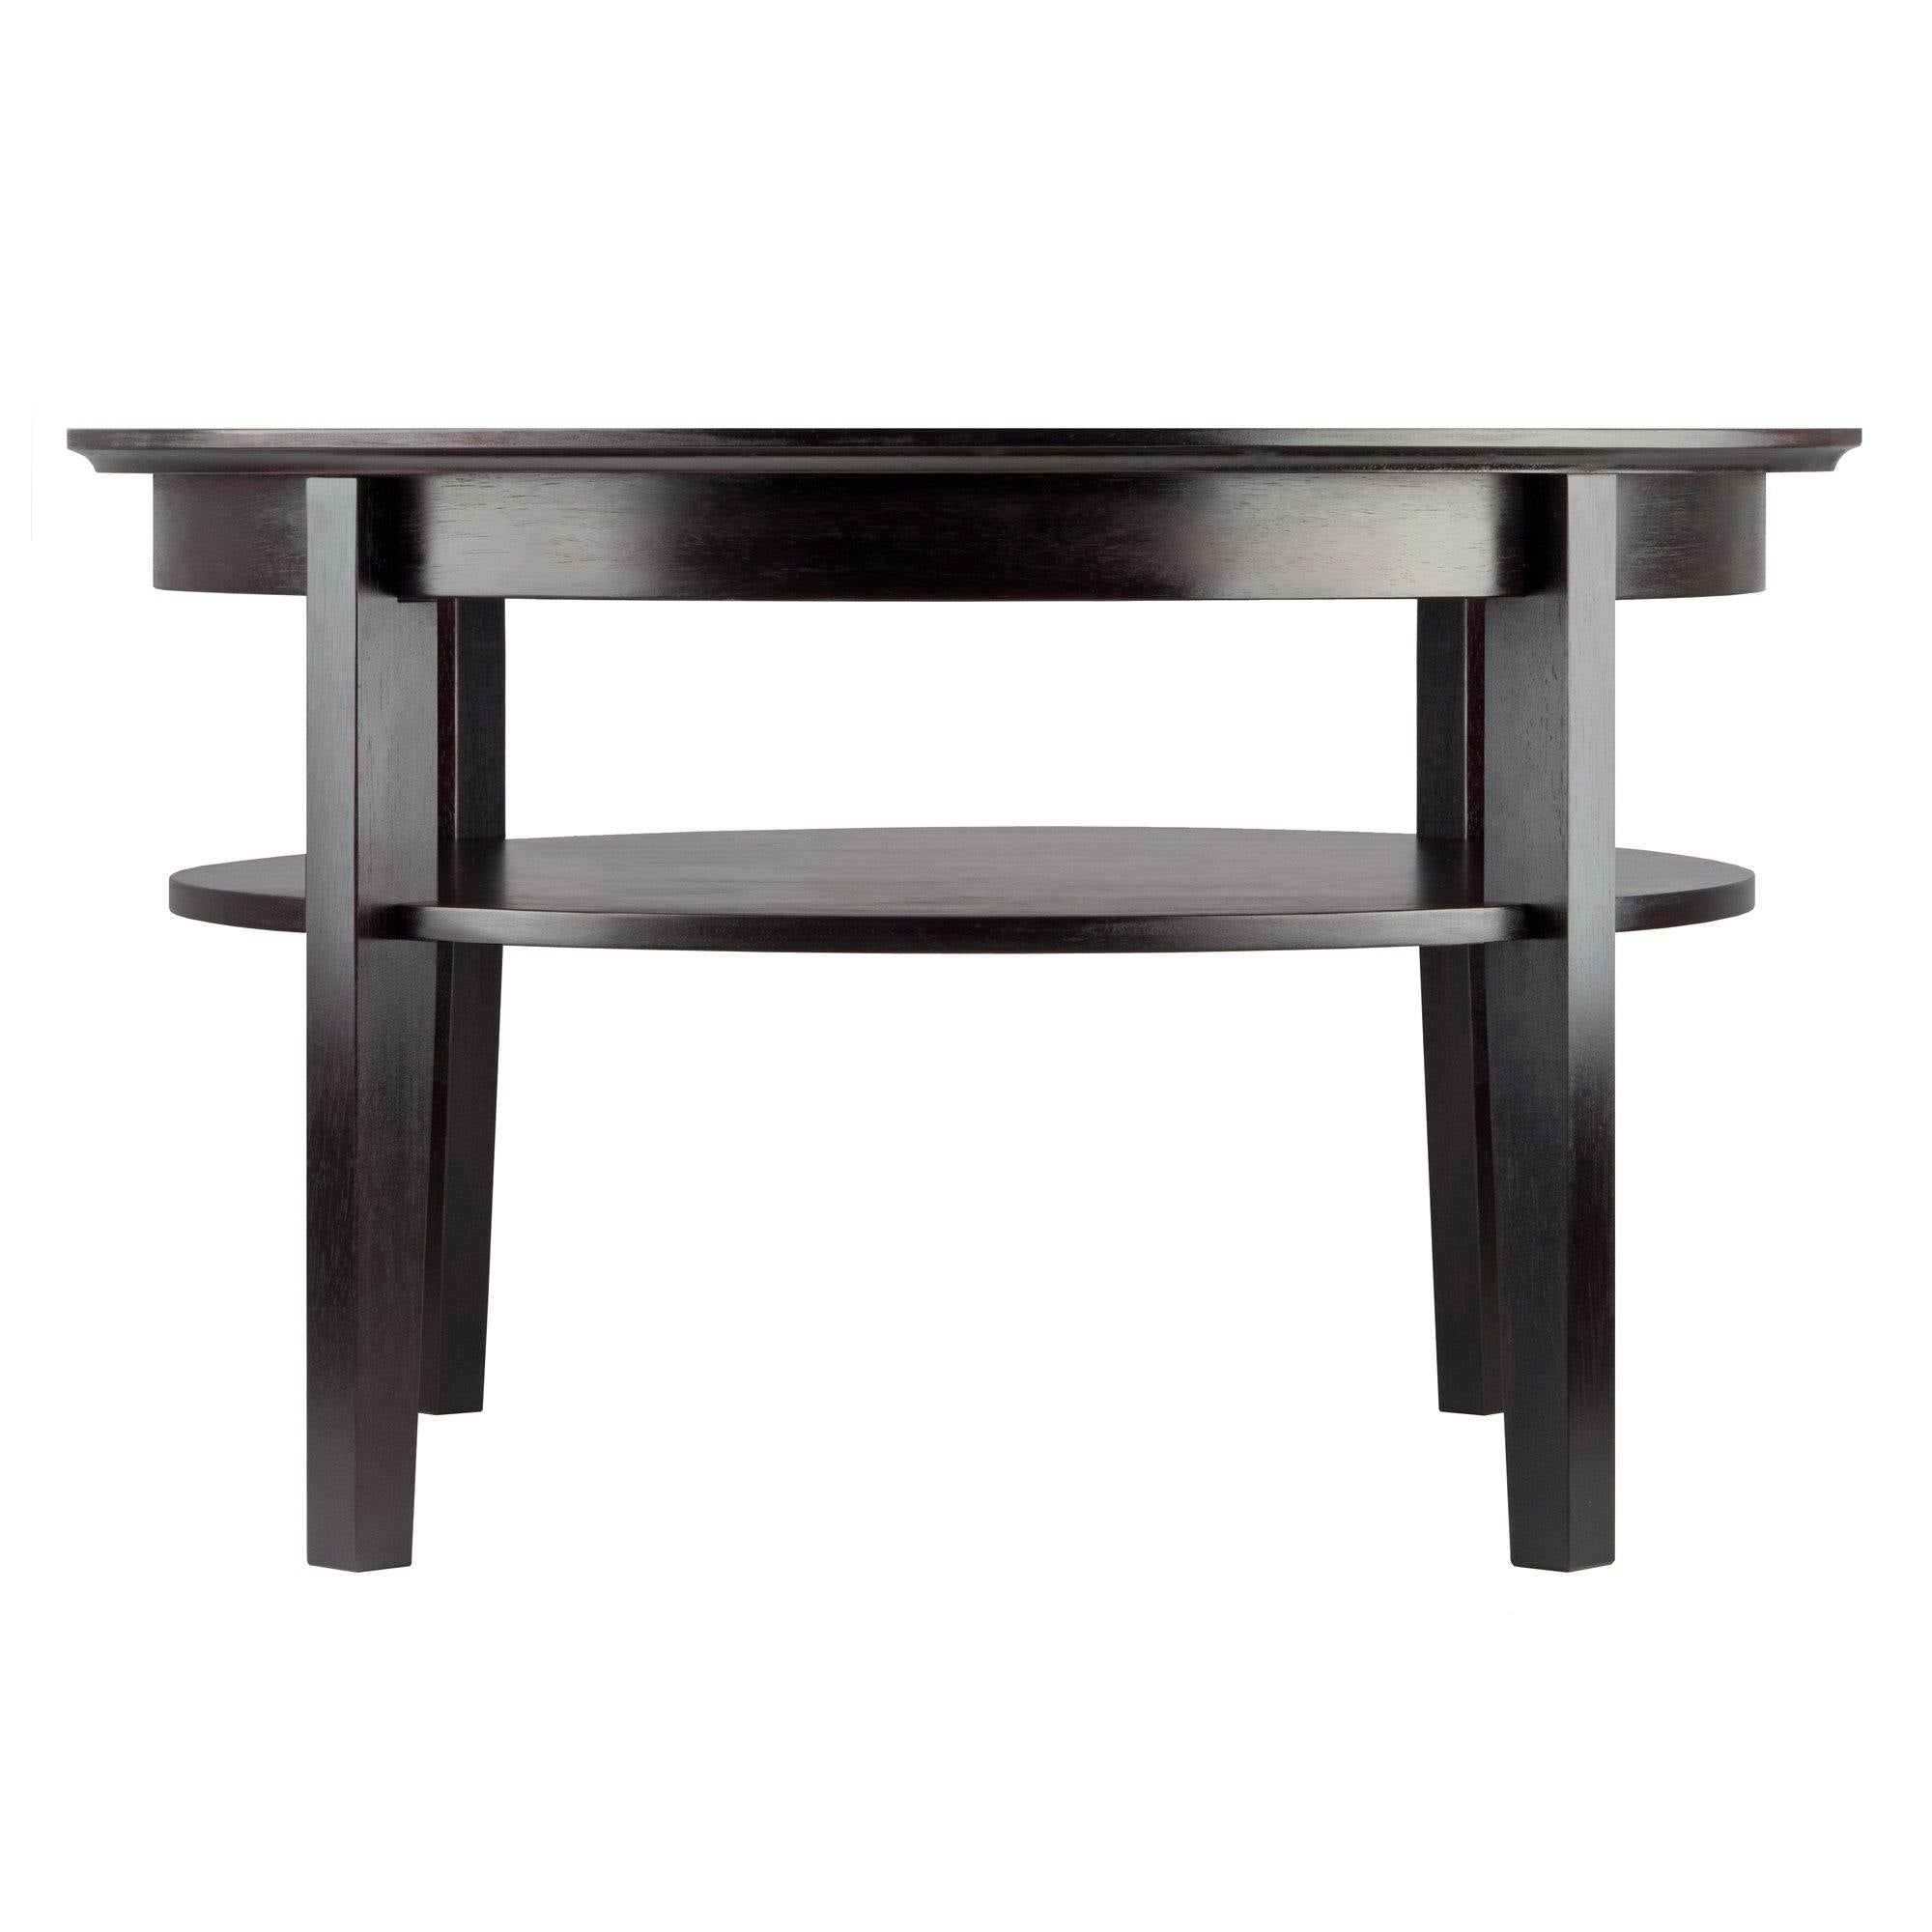 Amelia Round Coffee Table with Pull out Tray - My USA Furniture